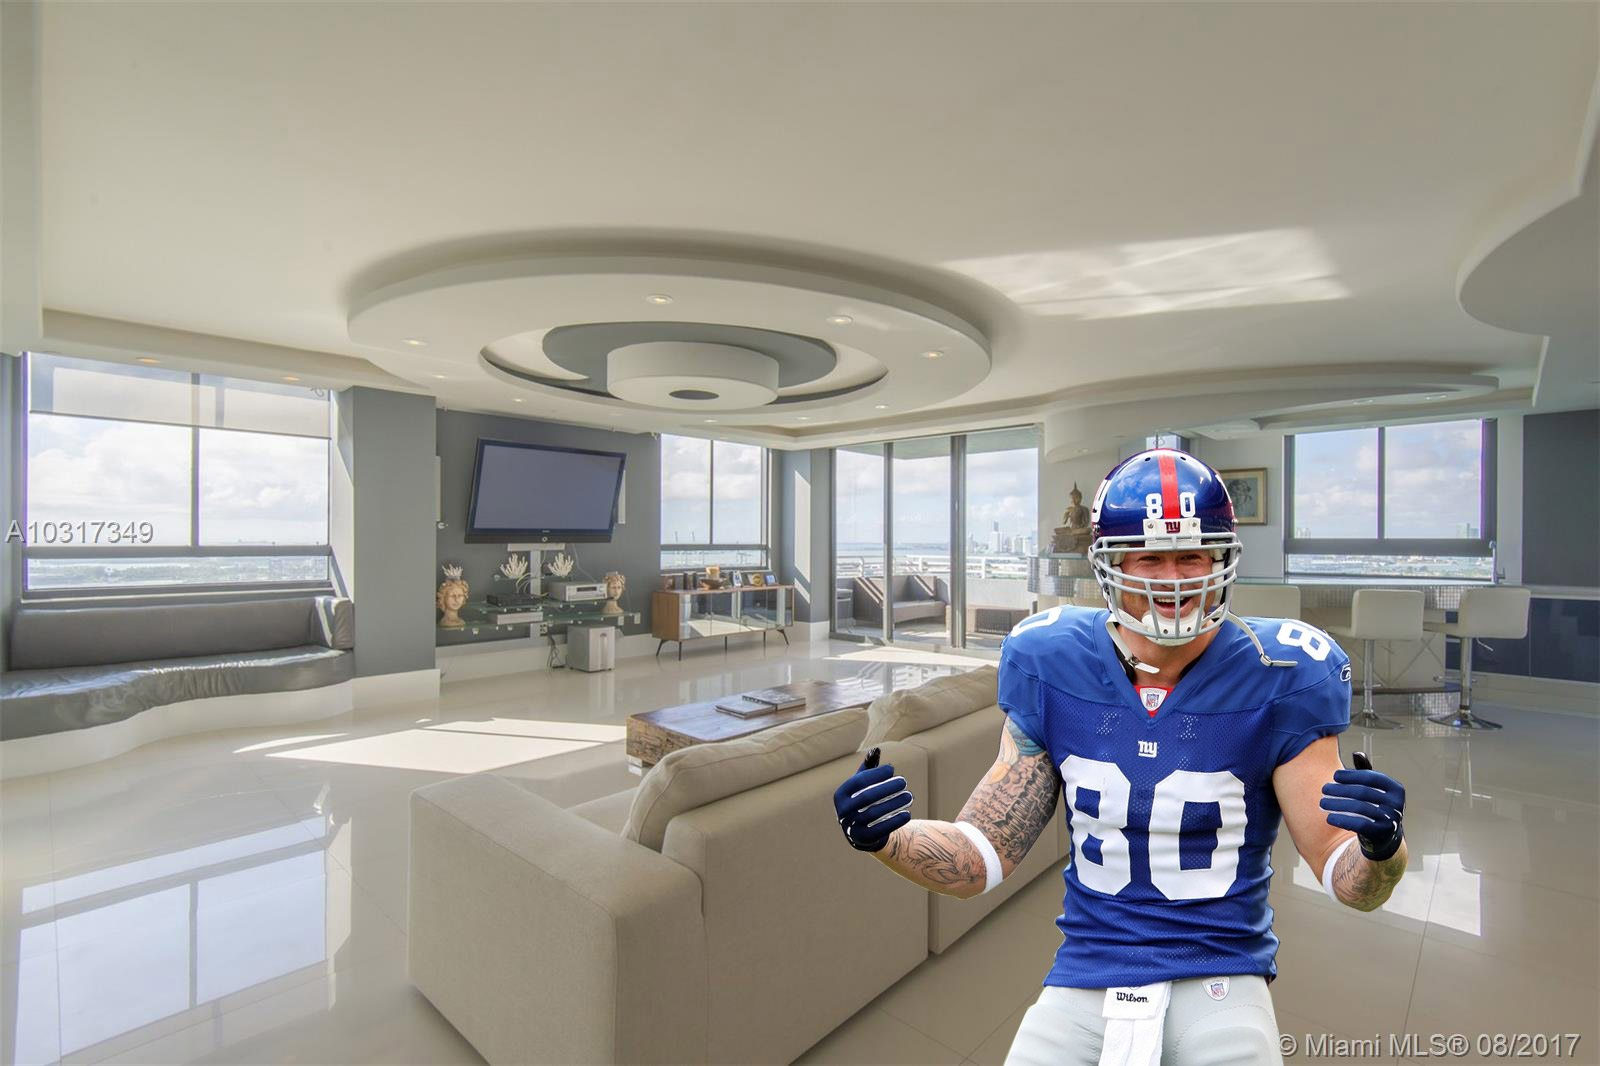 Jeremy Shockey sells South Beach condo for $2.4M